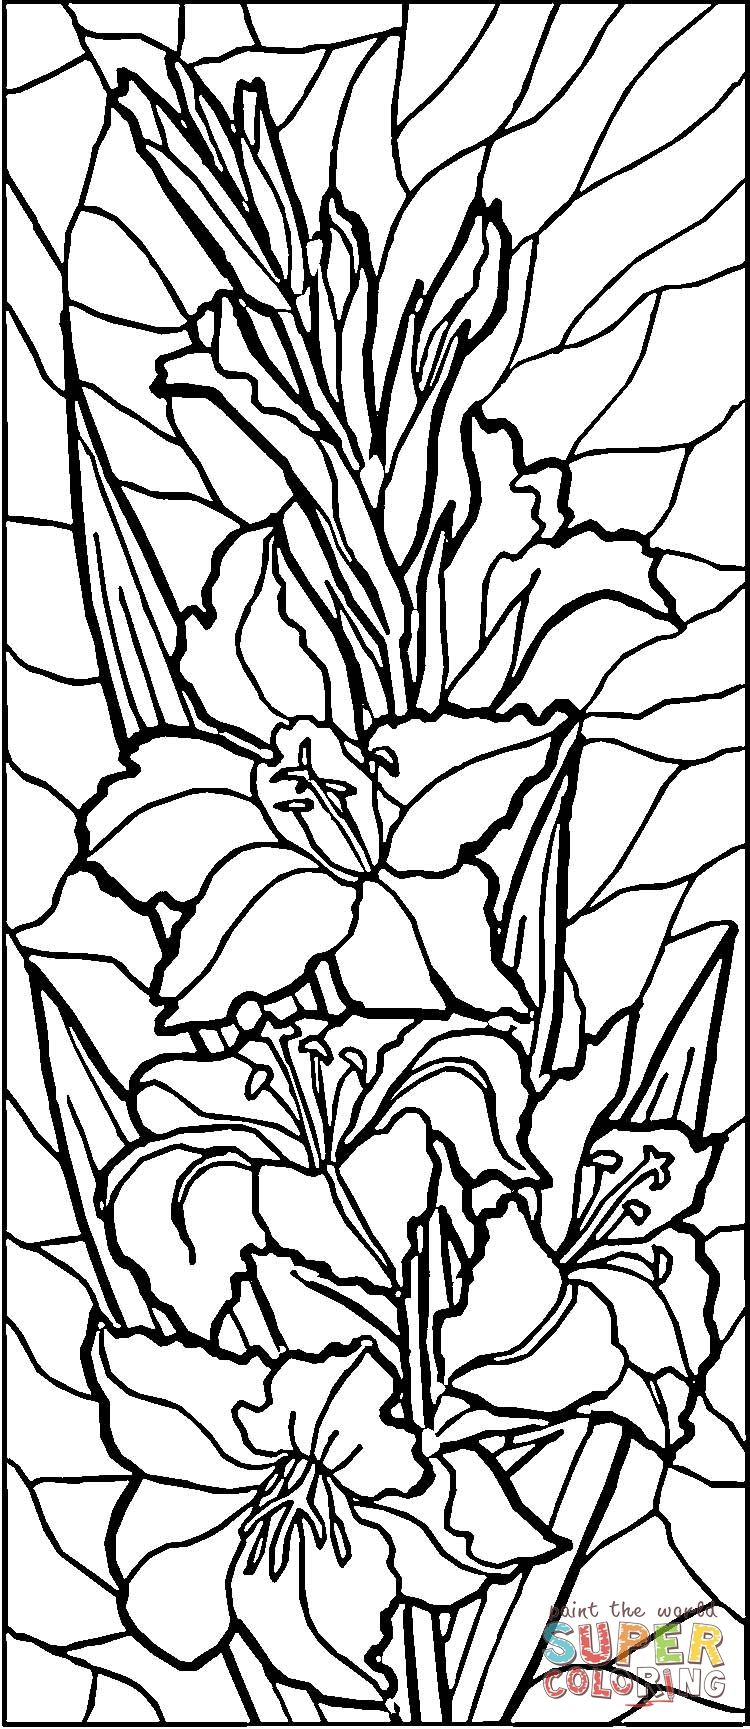 Easter Stained Glass Coloring Pages Glass Painting Patterns Glass Painting Designs Stained Glass Patterns Free